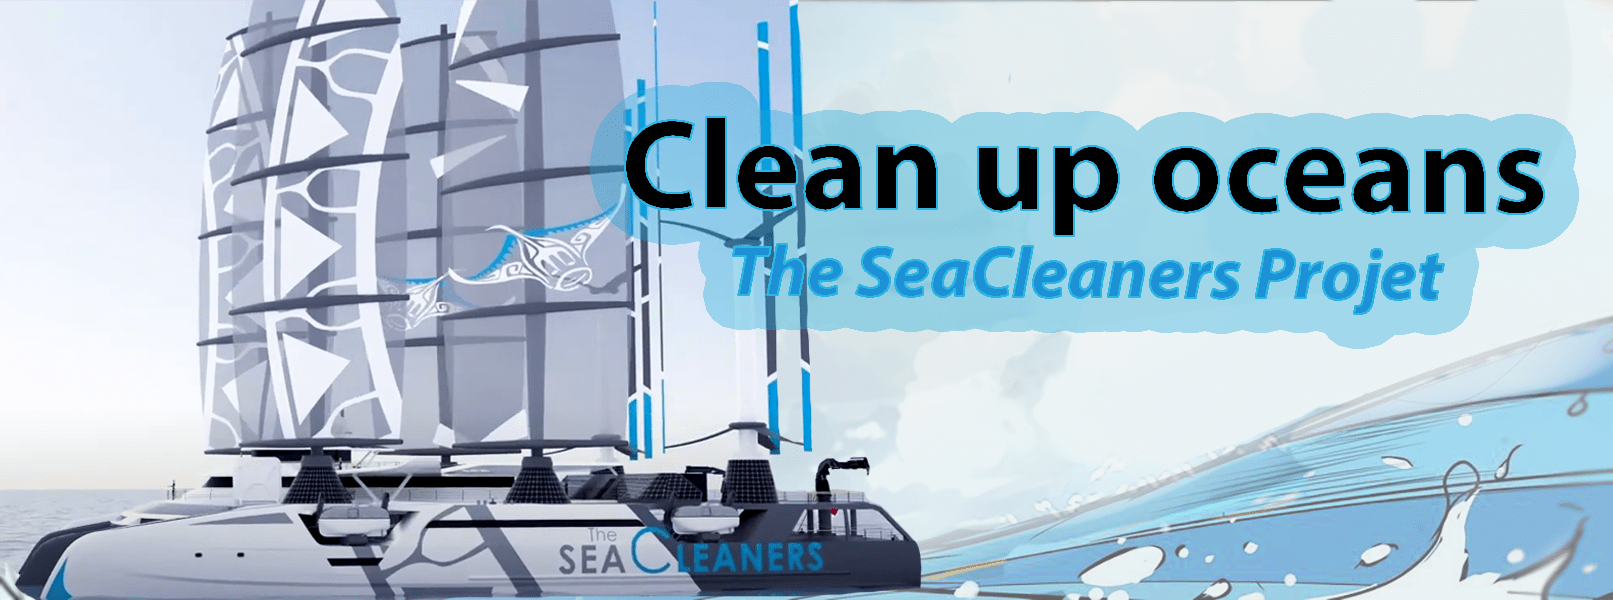 TheSea Cleaners - Clean up ocean projet